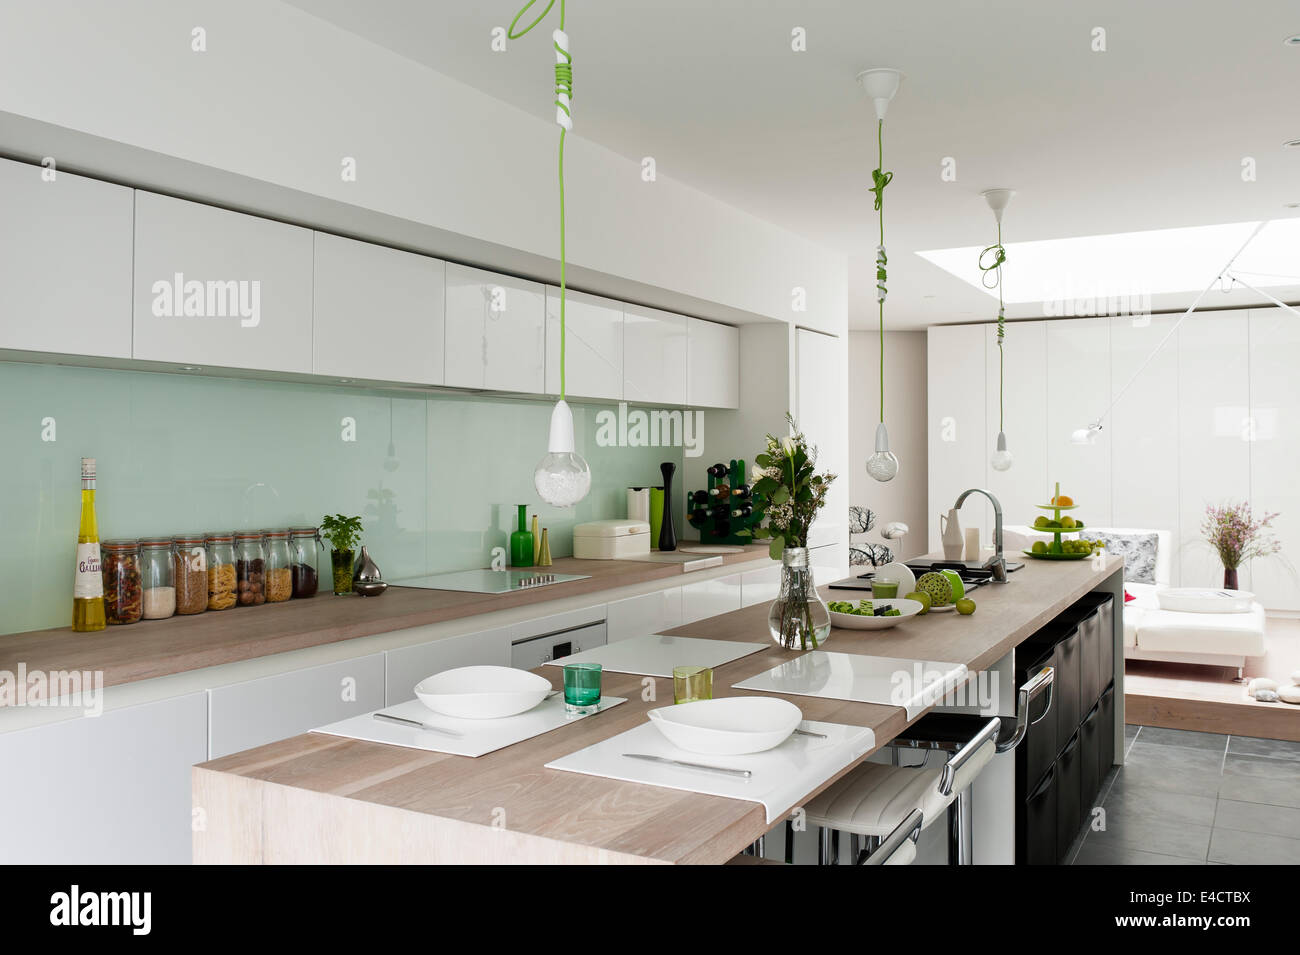 Küchen modern  Modern kitchen from Beeck kuechen. The green corded pendant lights ...